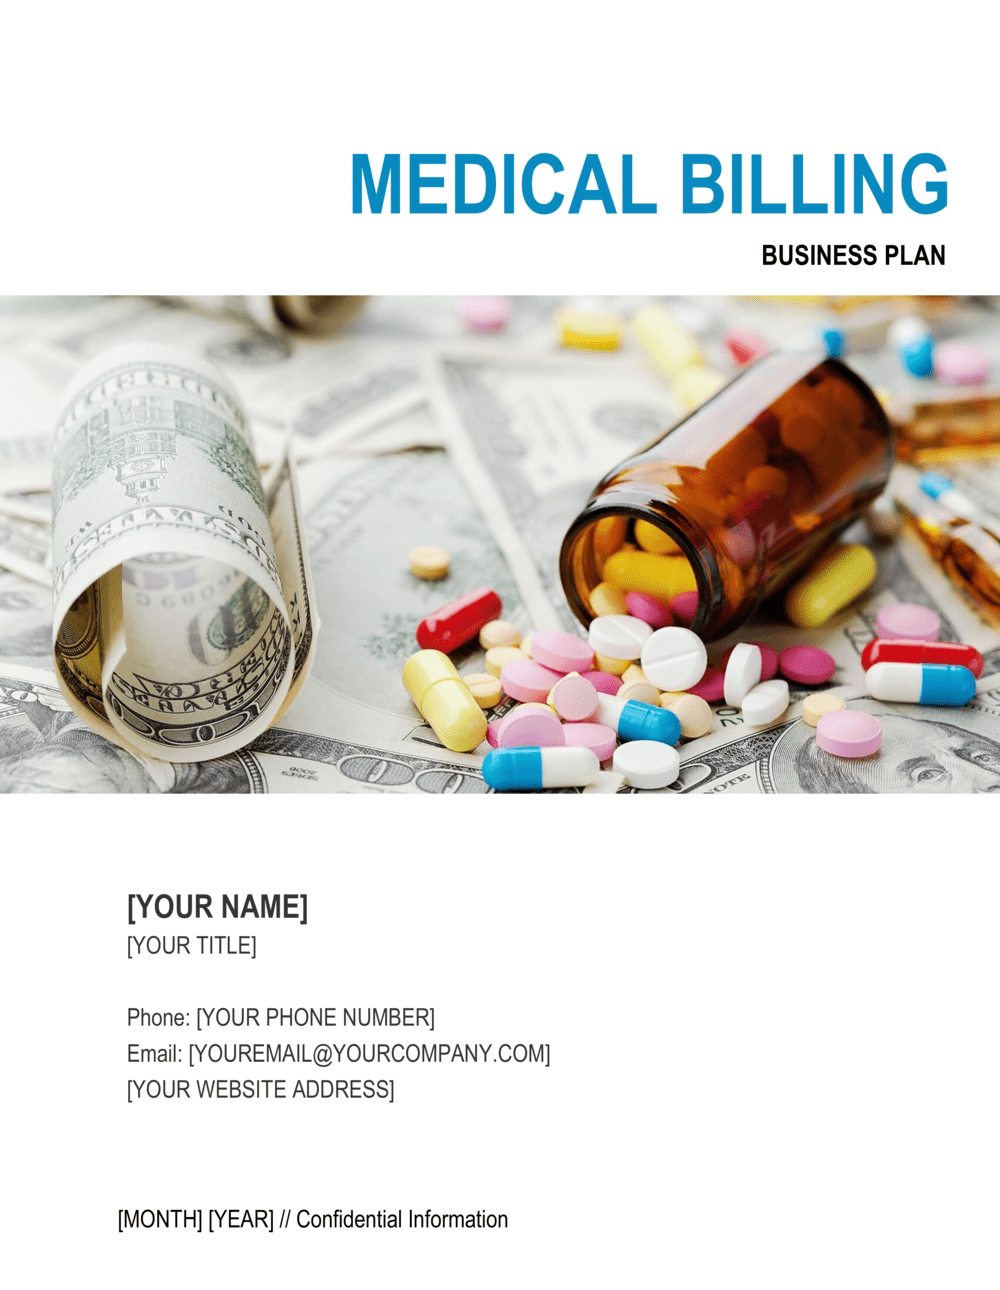 Business-in-a-Box's Medical Billing Business Plan Template